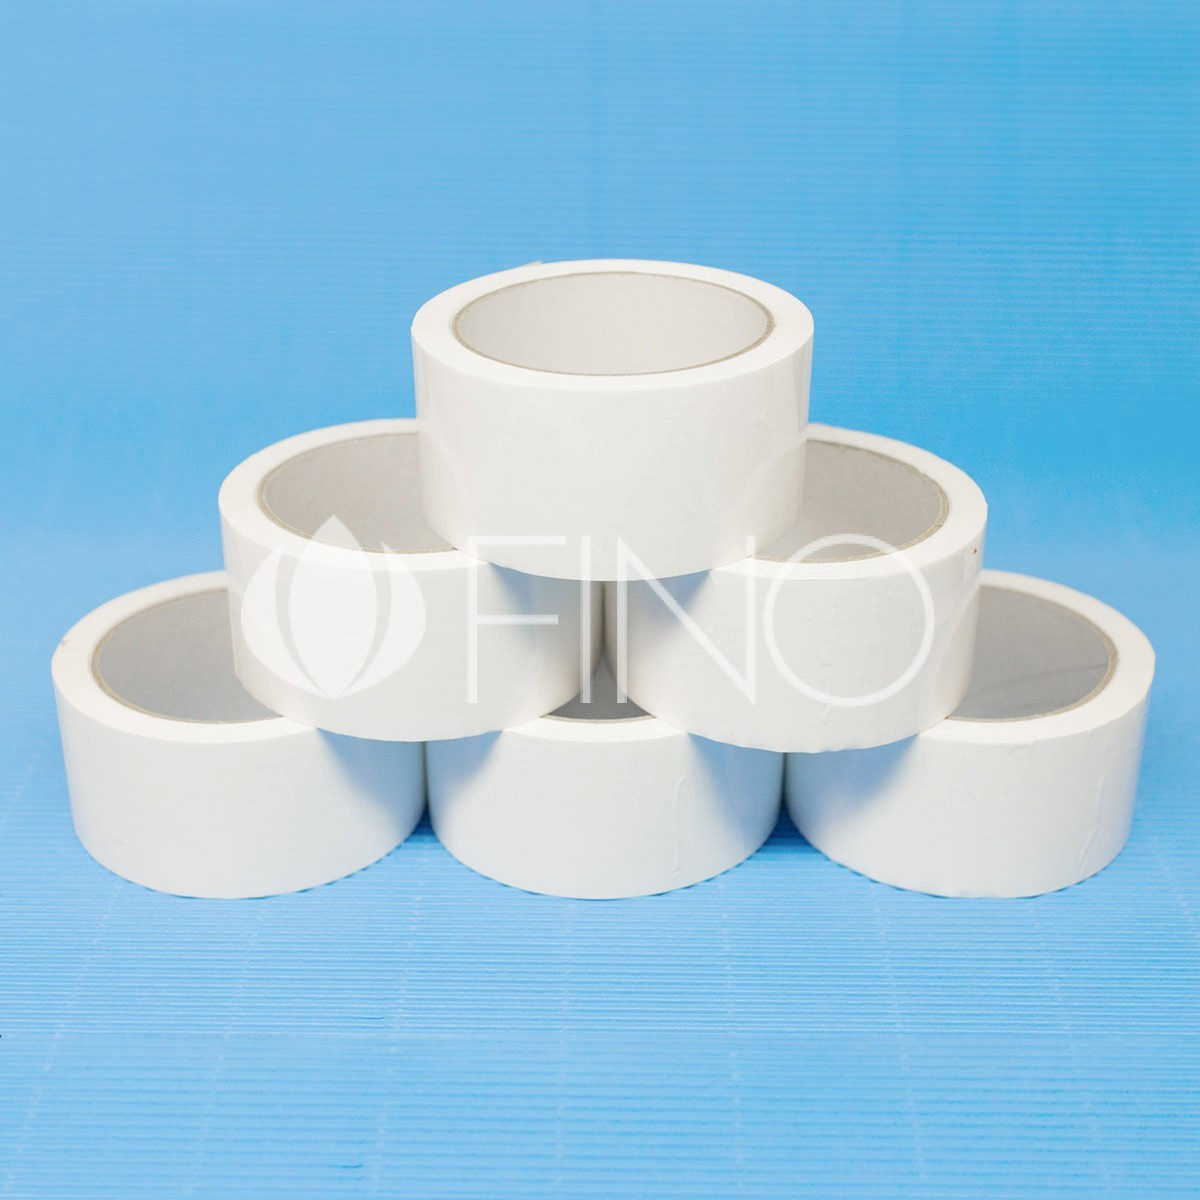 Packaging tapes on hot-melt adhesive